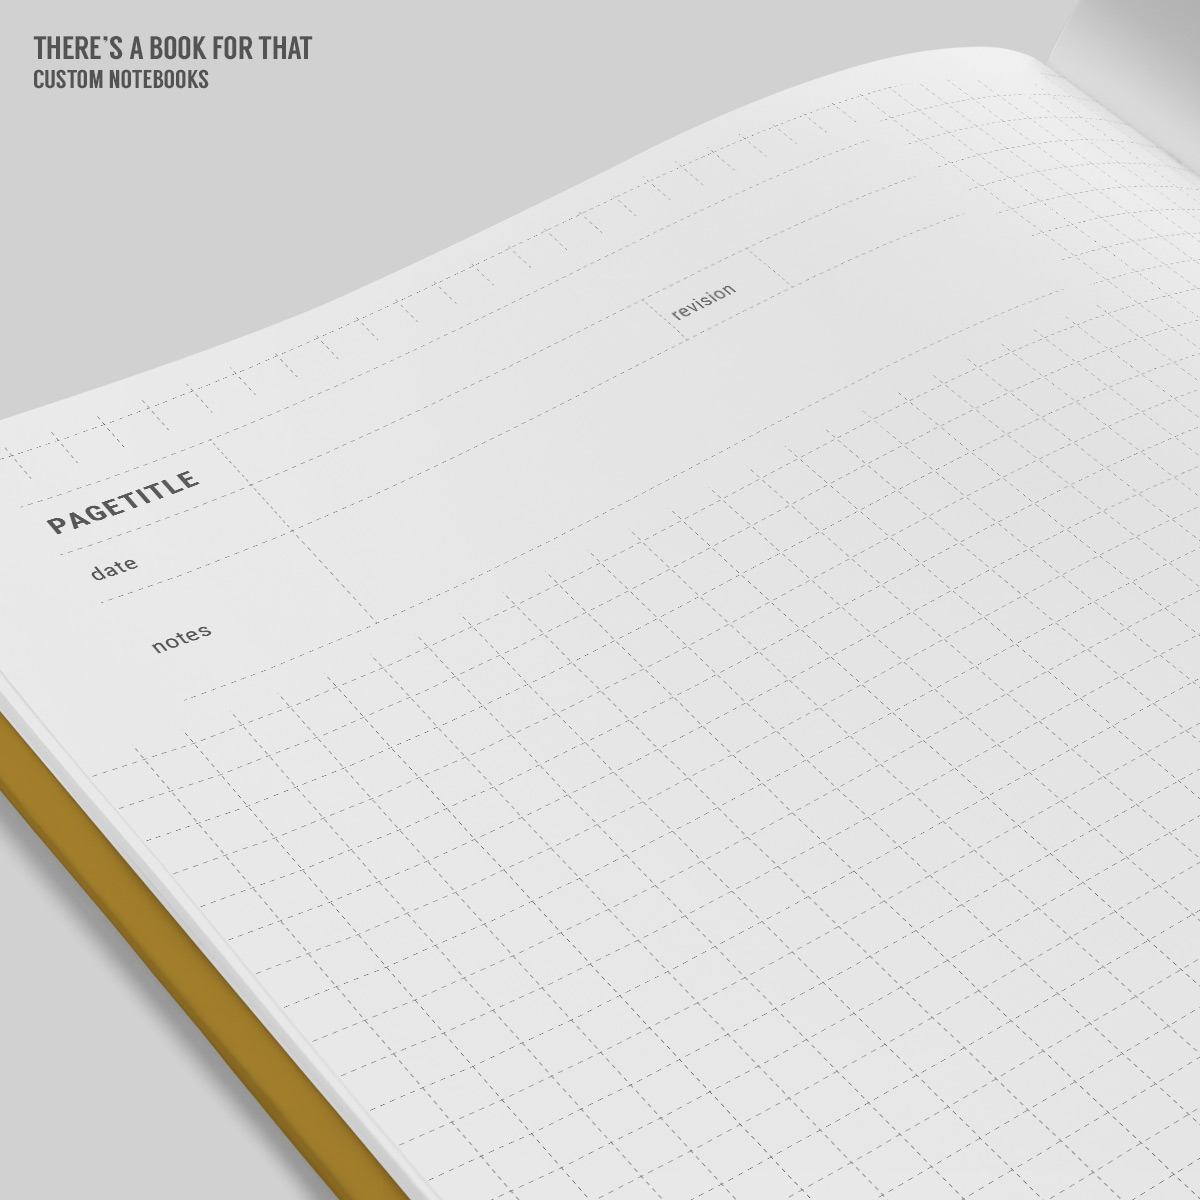 A grids notebook with 3 different, alternating grids – graph, dotted graph & dotted grid. Alternating grids support creativity and encourage thinking out of the box.